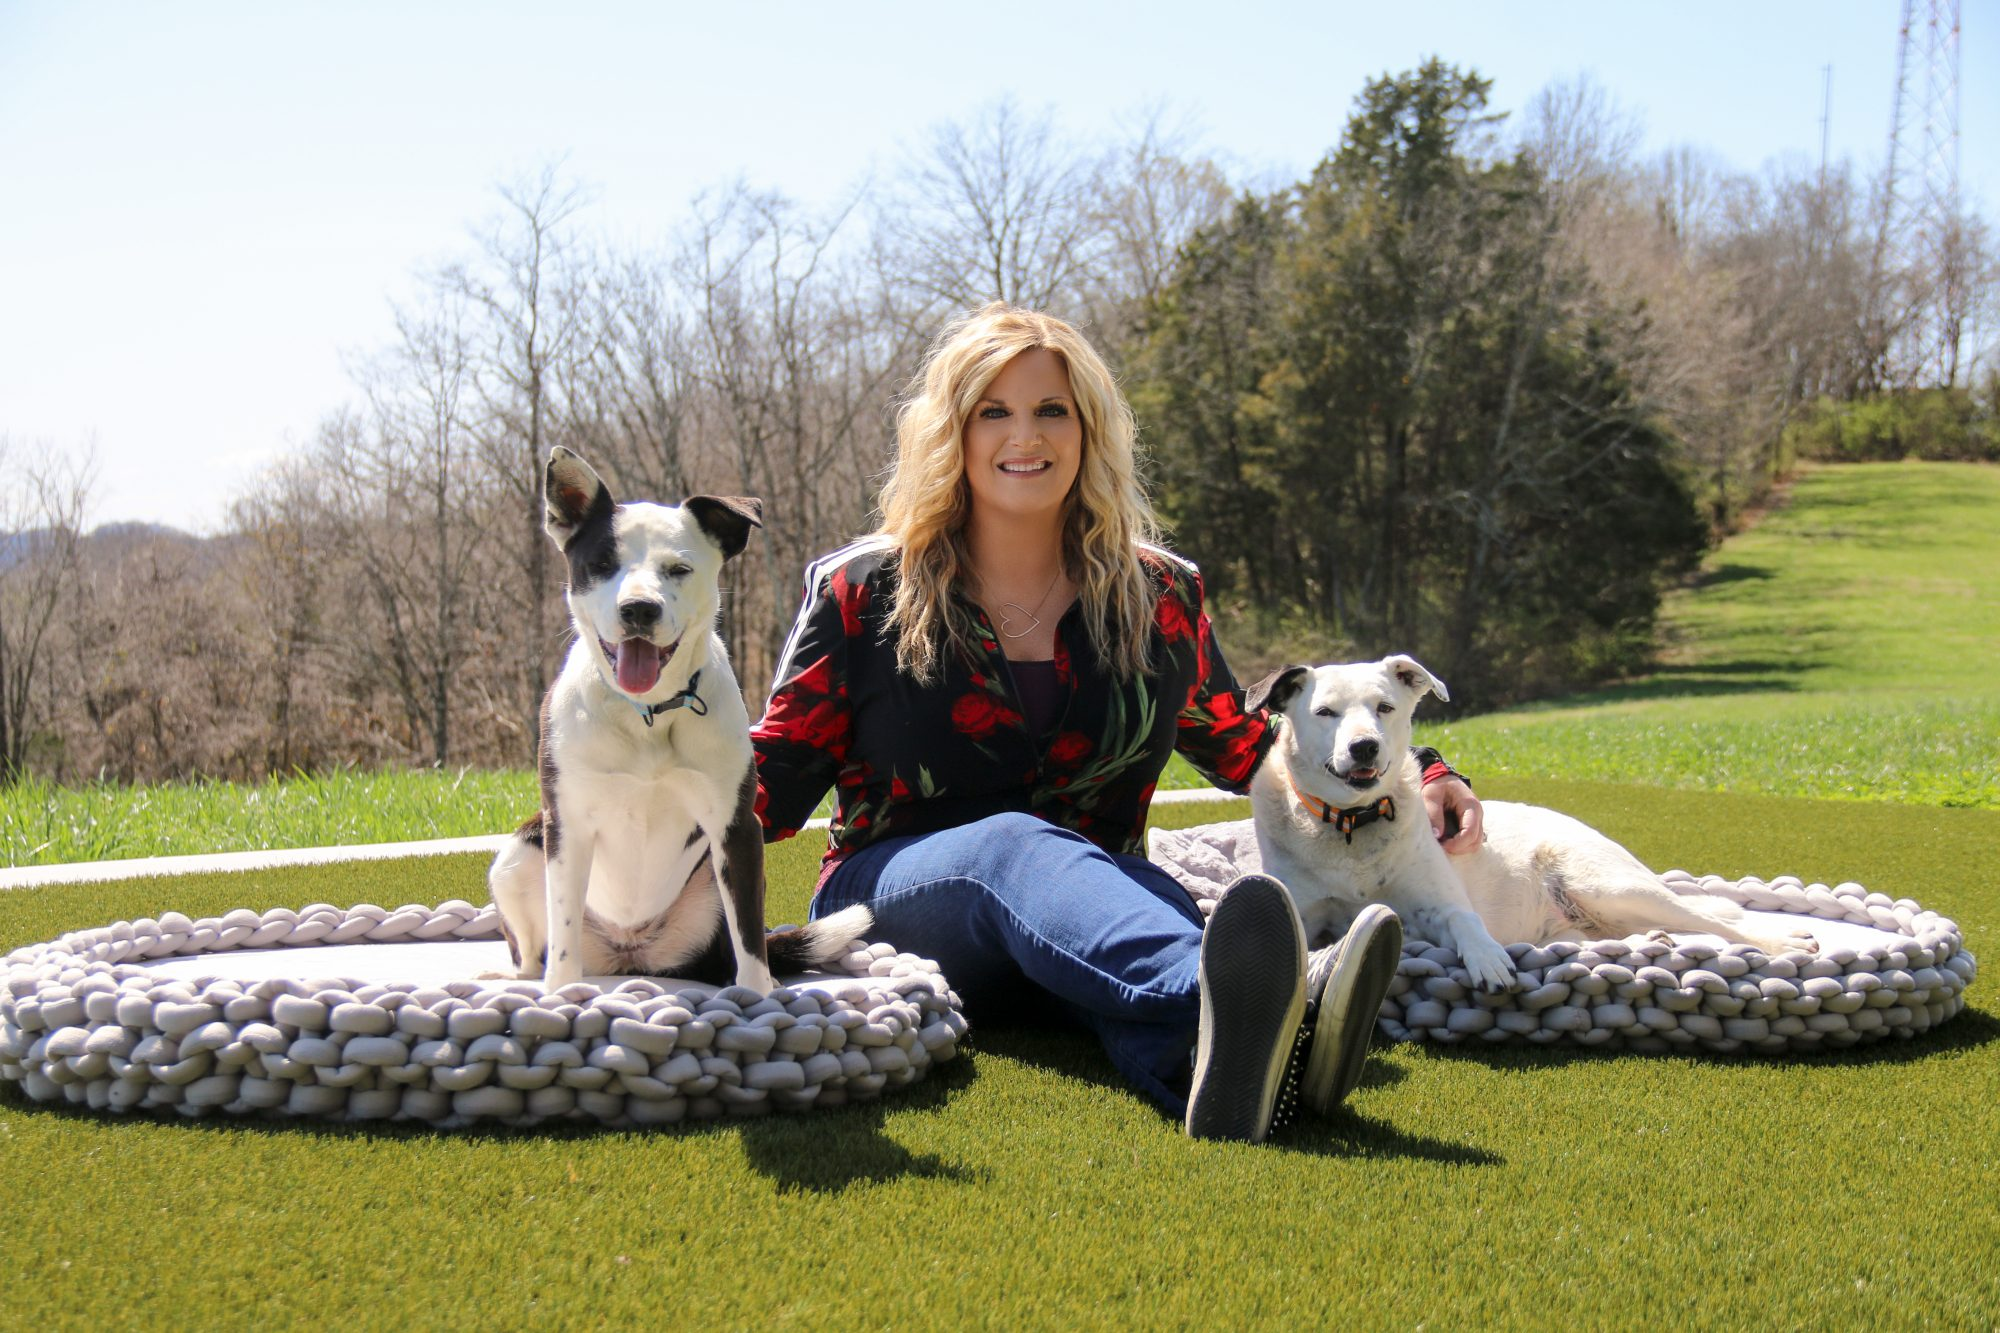 Influencer Trisha Yearwood is flanked on both sides by adult dogs on dog beds outdoors on lawn